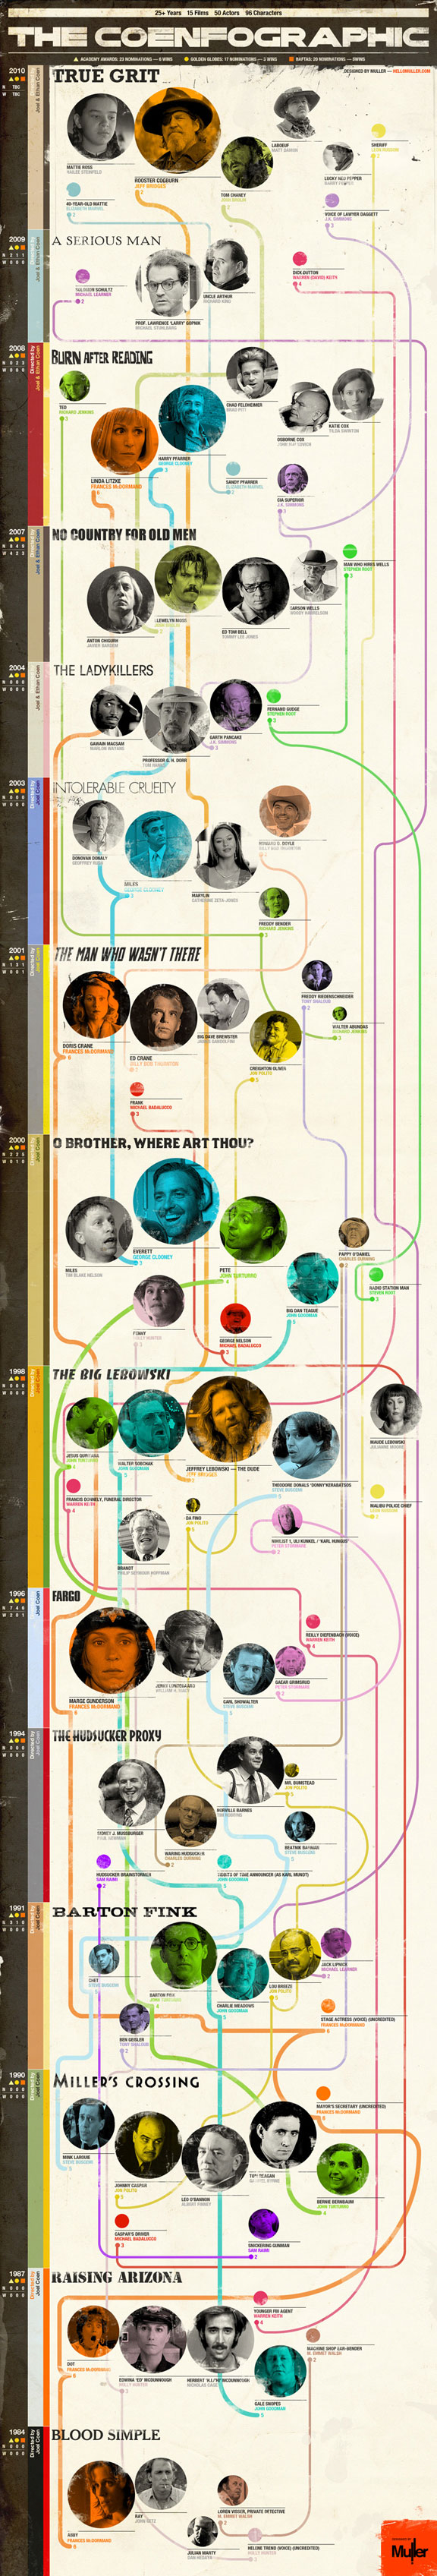 The Coen's Casting Universe, coengraphic, deigned by muller, infographic, film fan